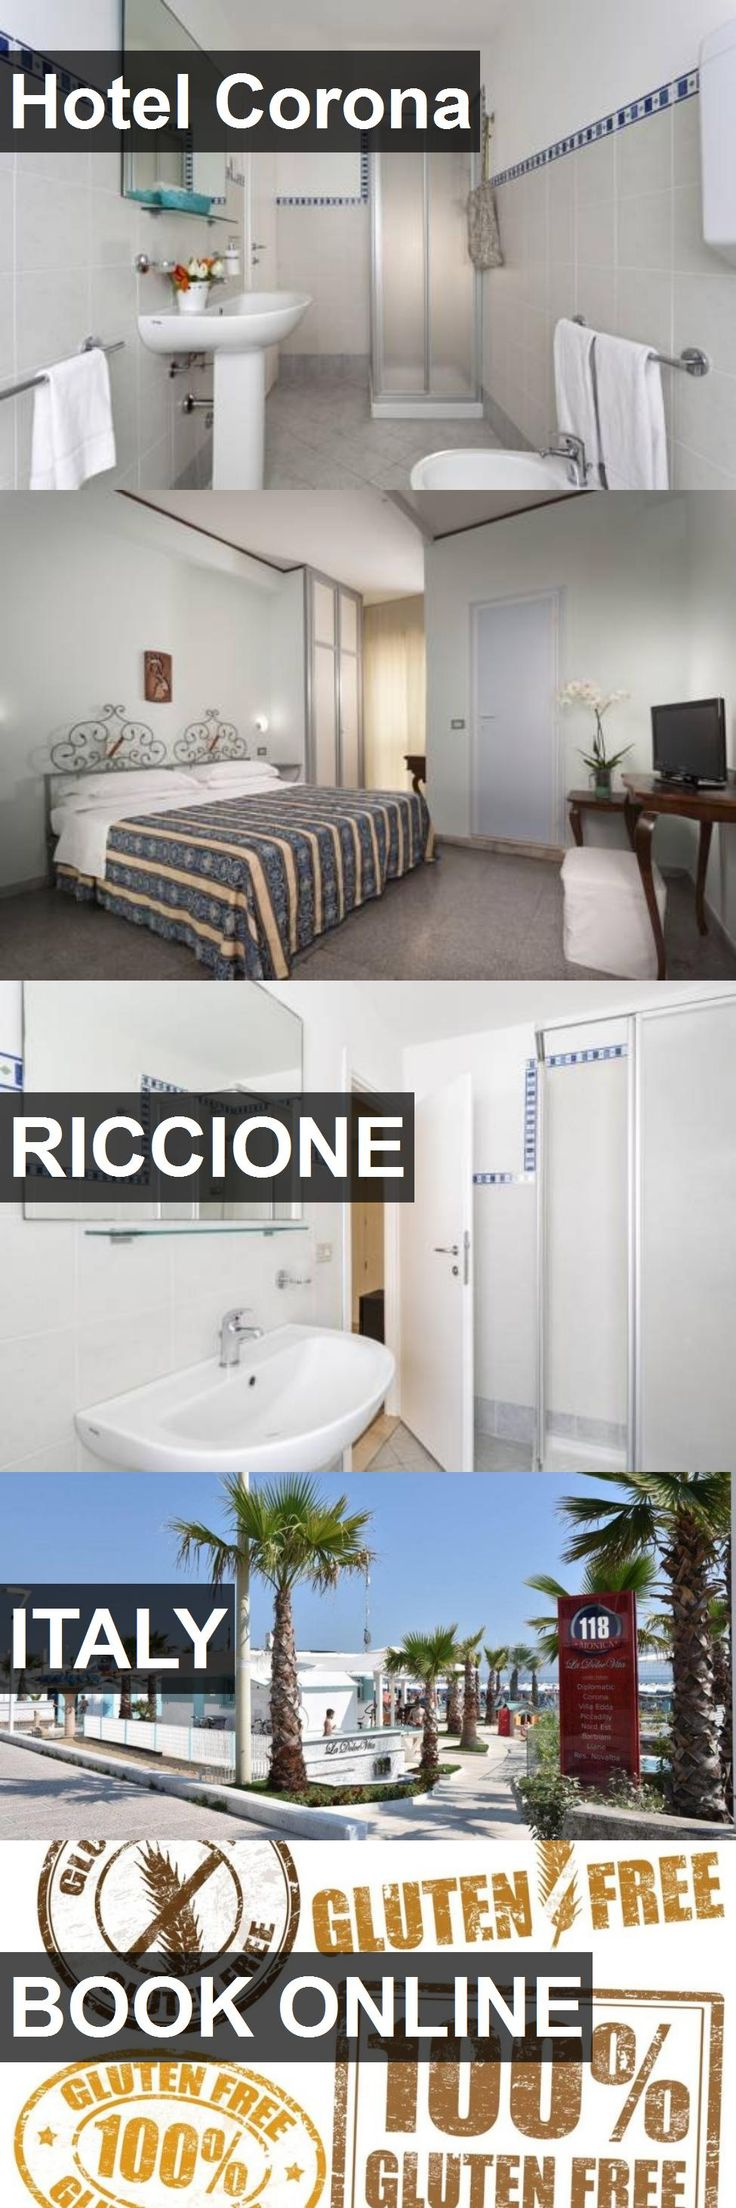 Hotel Corona in Riccione, Italy. For more information, photos, reviews and best prices please follow the link. #Italy #Riccione #travel #vacation #hotel